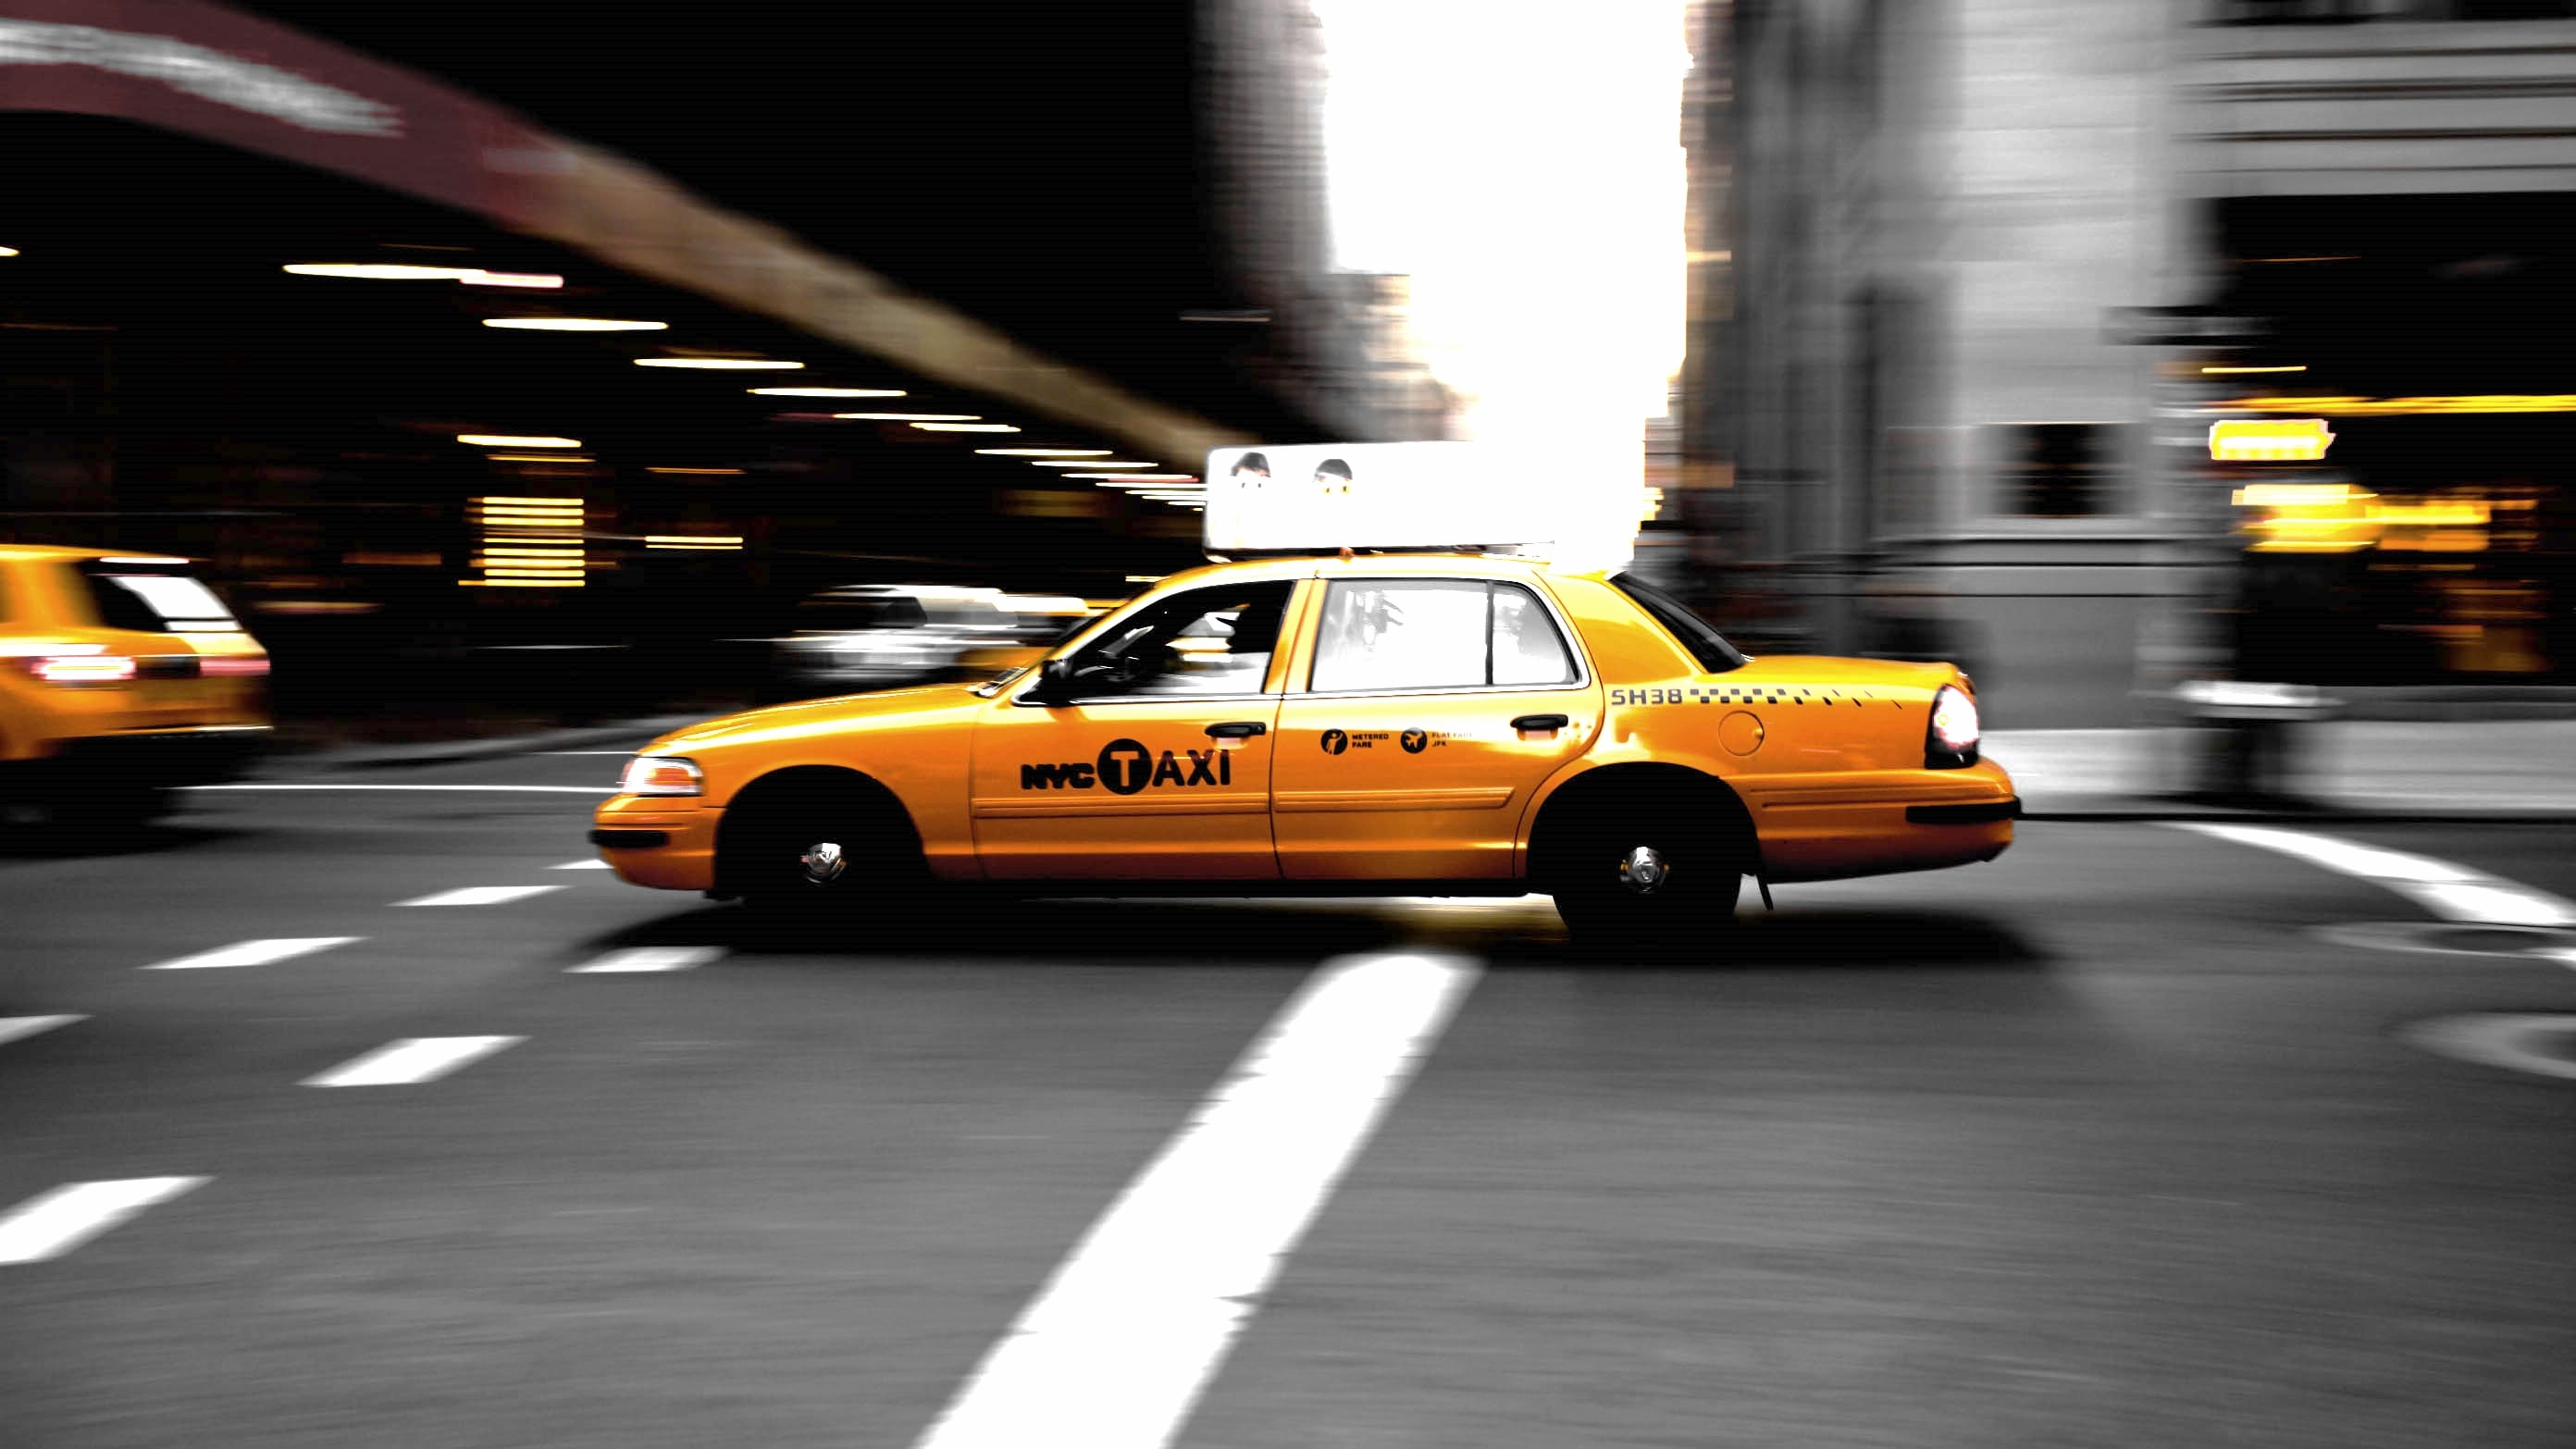 panning photography of yellow taxi on road